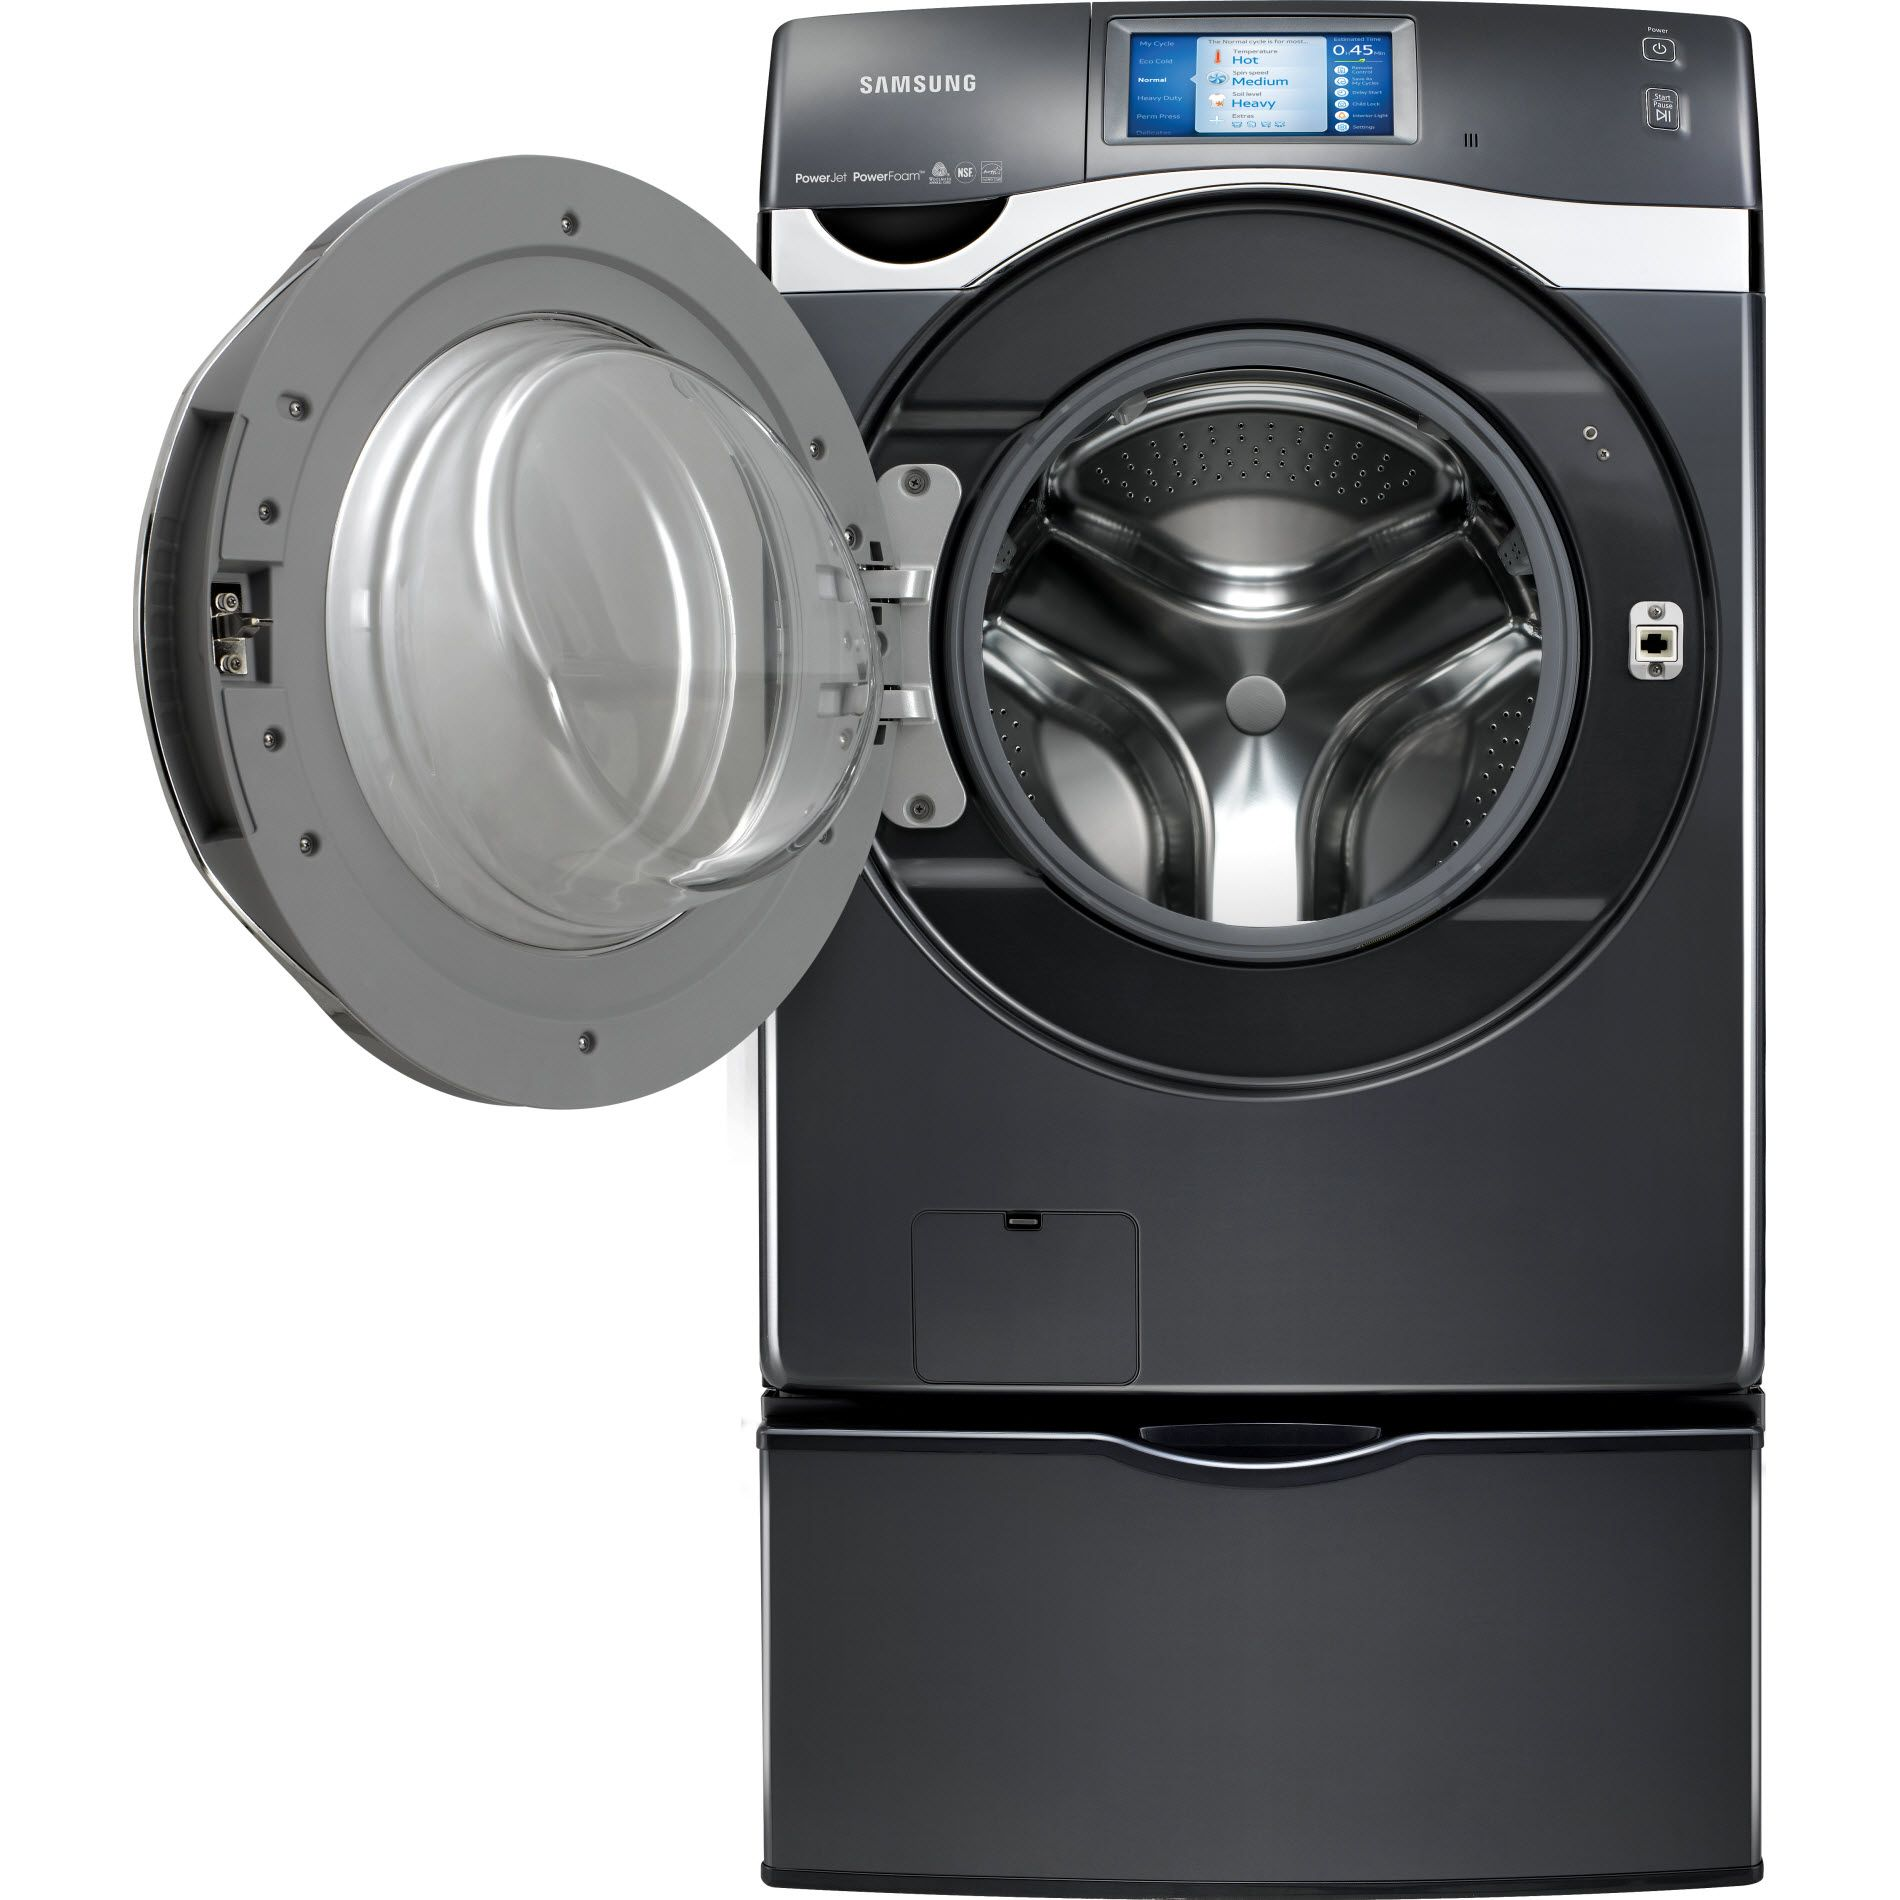 Samsung 4.5 cu. ft. Front-Load Washer w/VRT Plus™  - Onyx